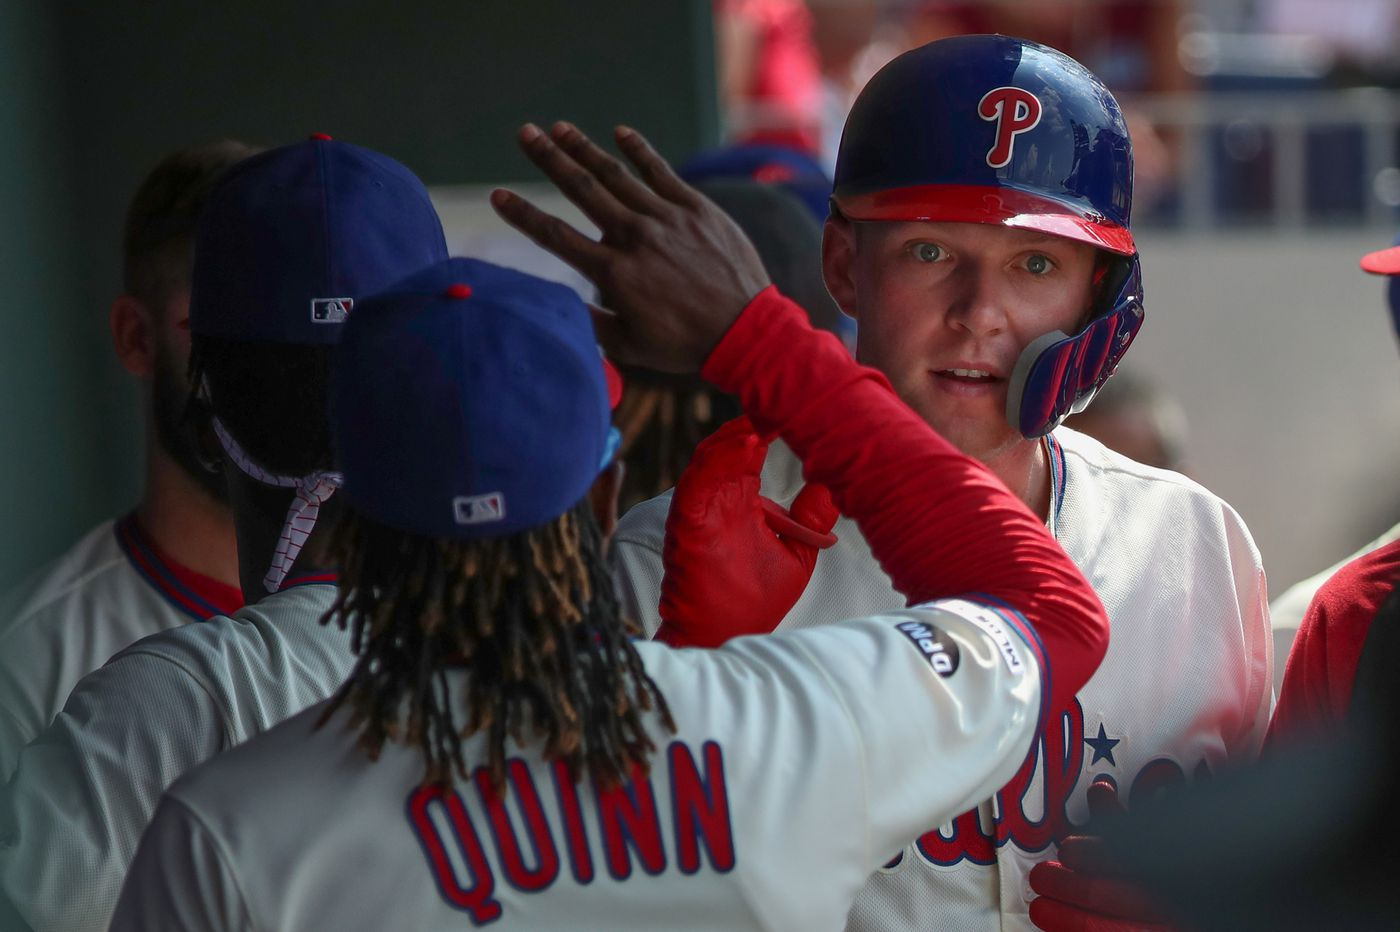 Rhys Hoskins held out of Phillies' lineup as a precaution after being hit on the hand